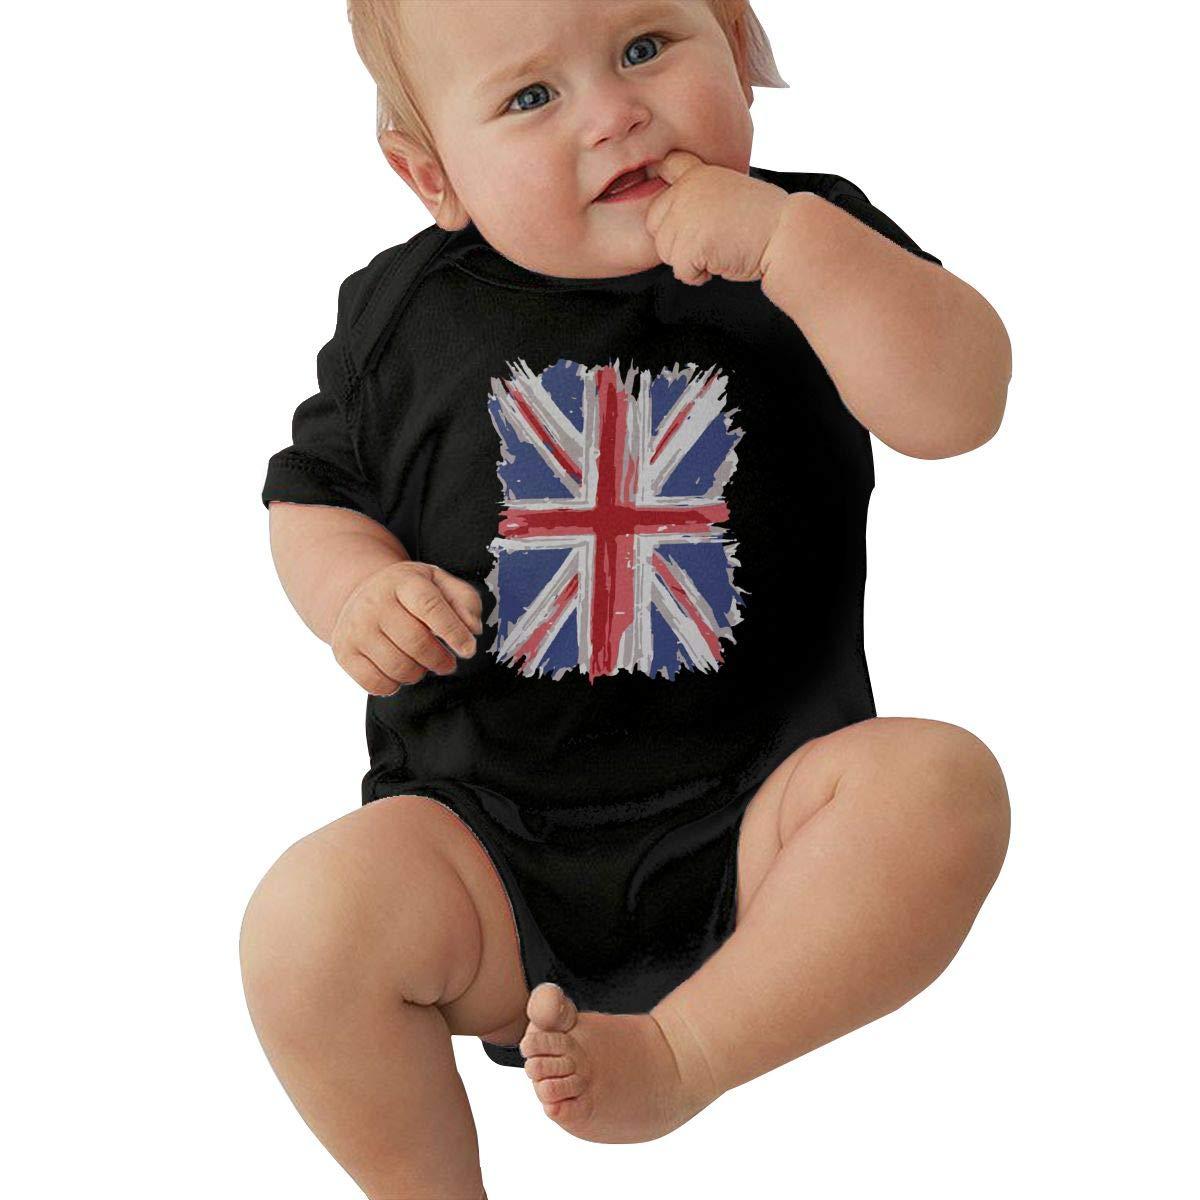 LBJQ9 Great Britain Flag Toddler Baby Girls Soft /& Breathable Short Sleeve Romper Jumpsuit Outfits Clothes